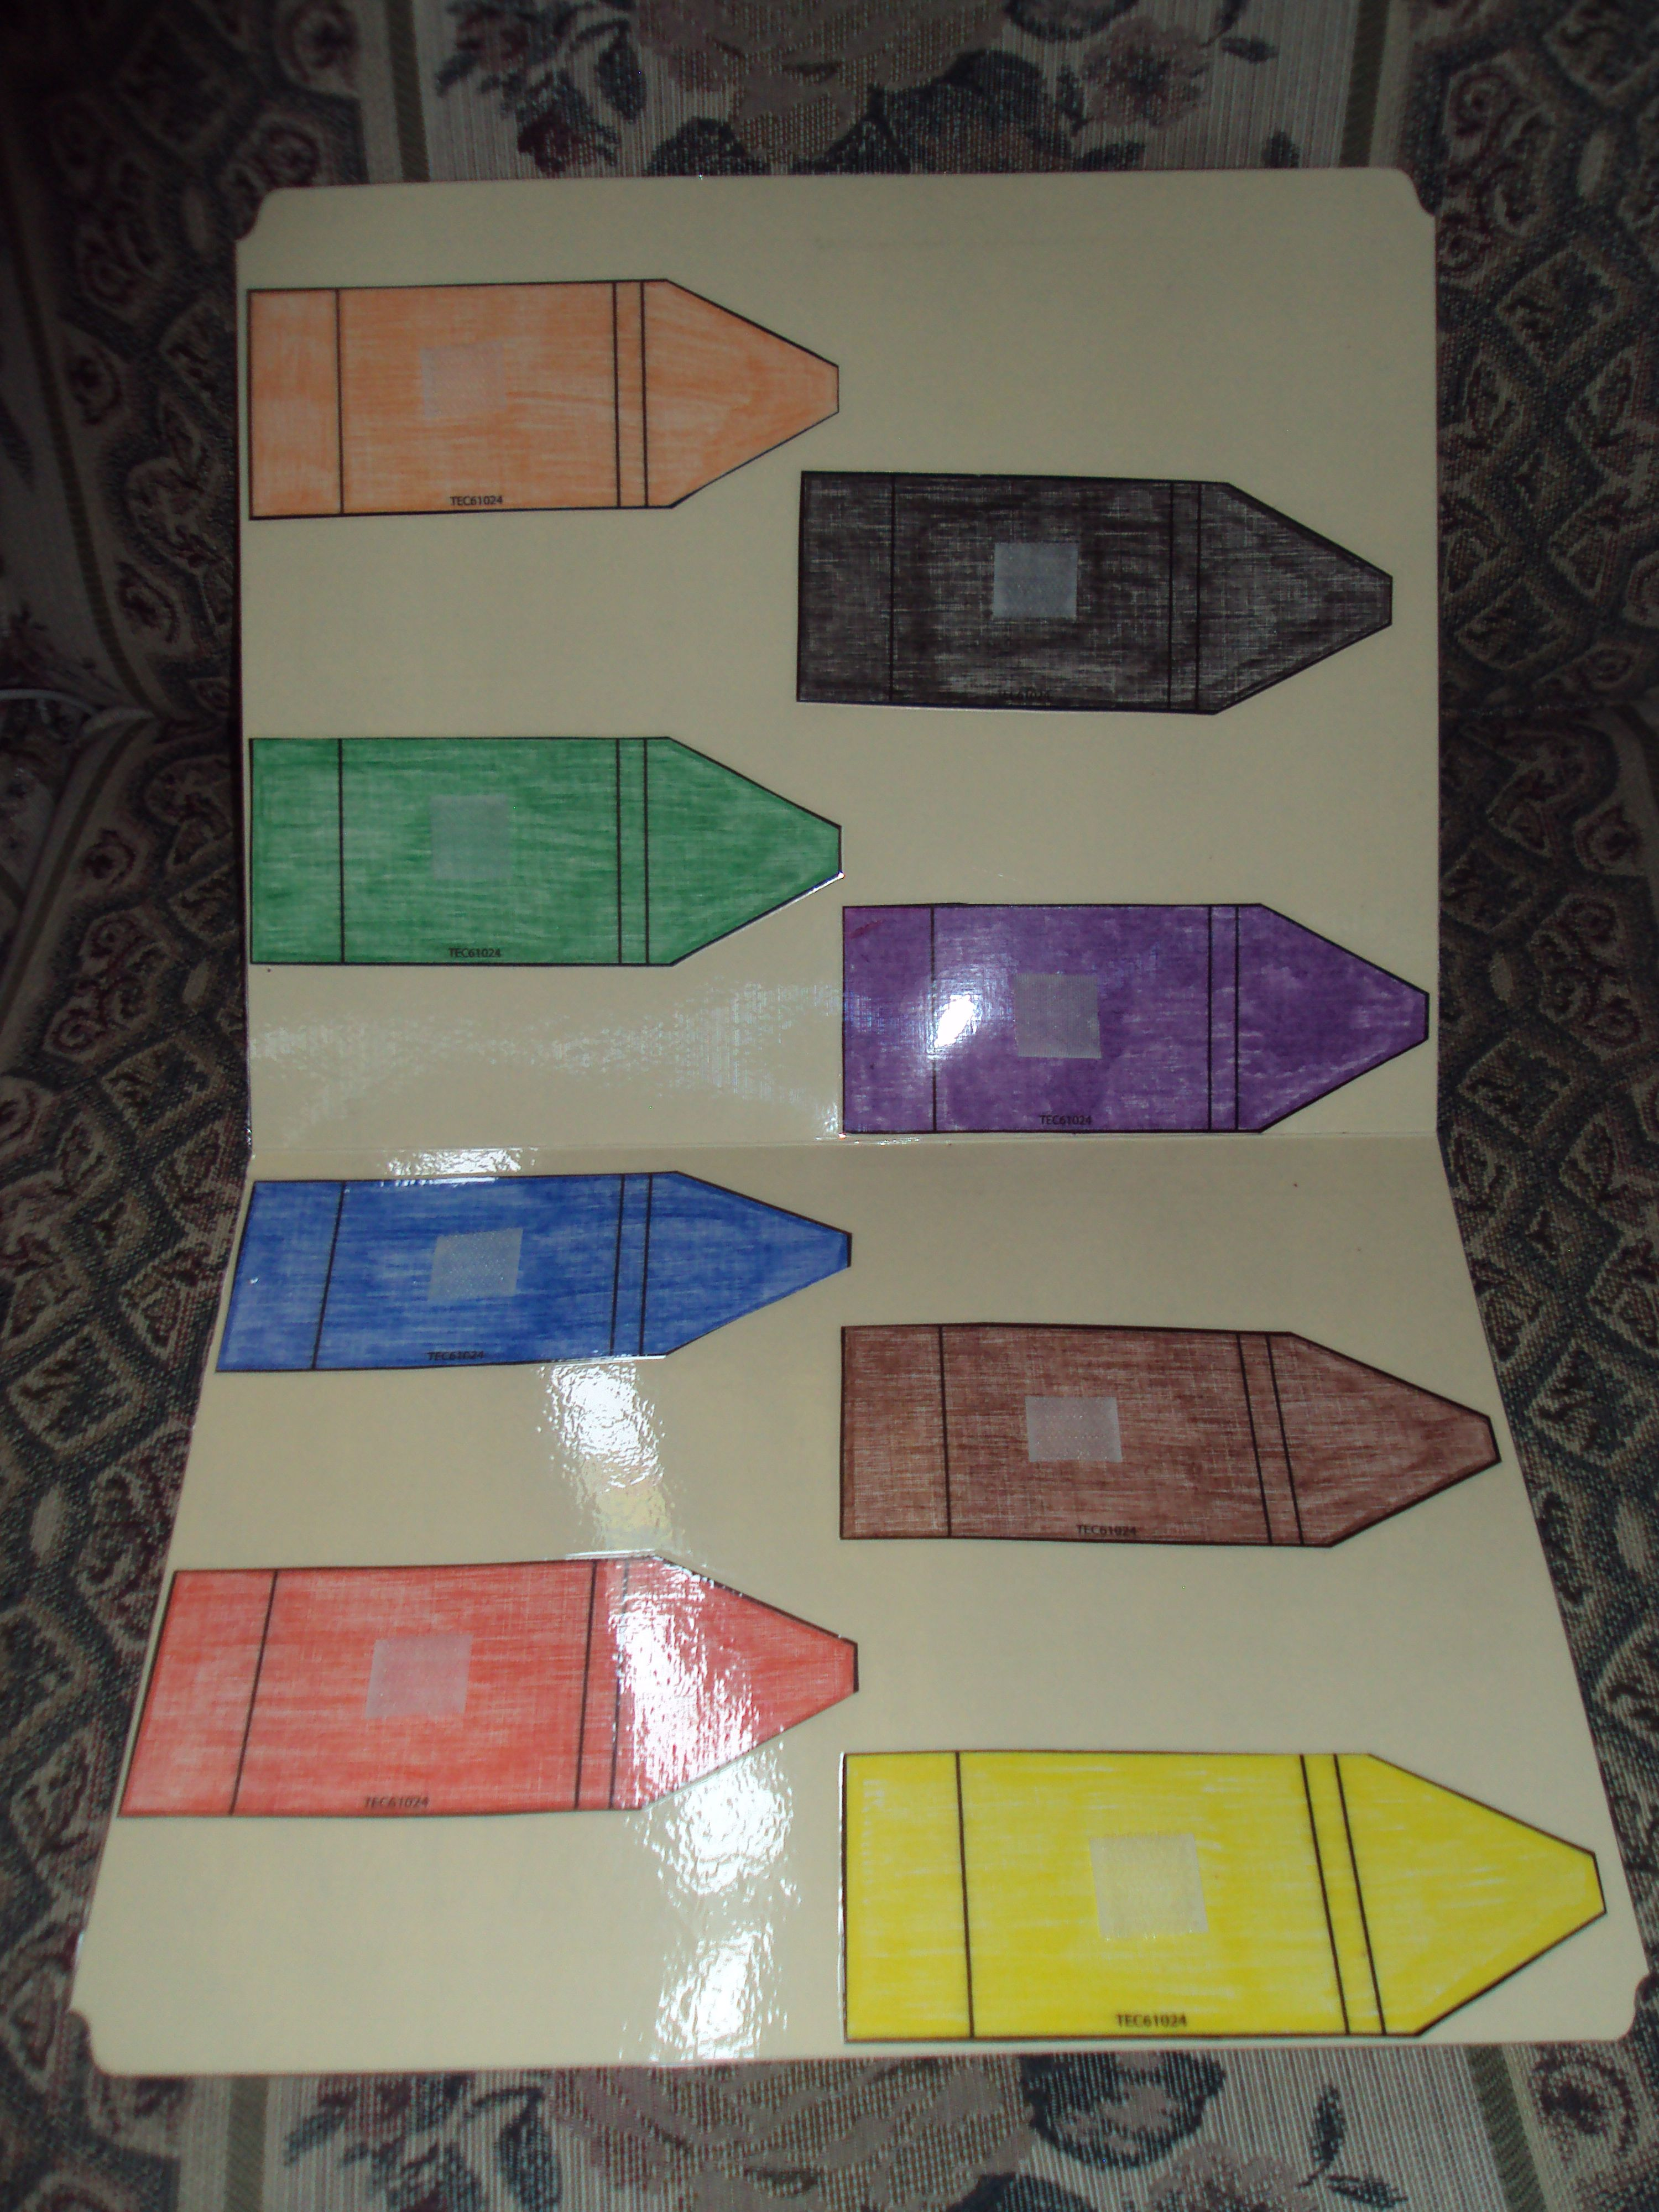 color and glue crayon patterns to file folder. laminate and attach ...